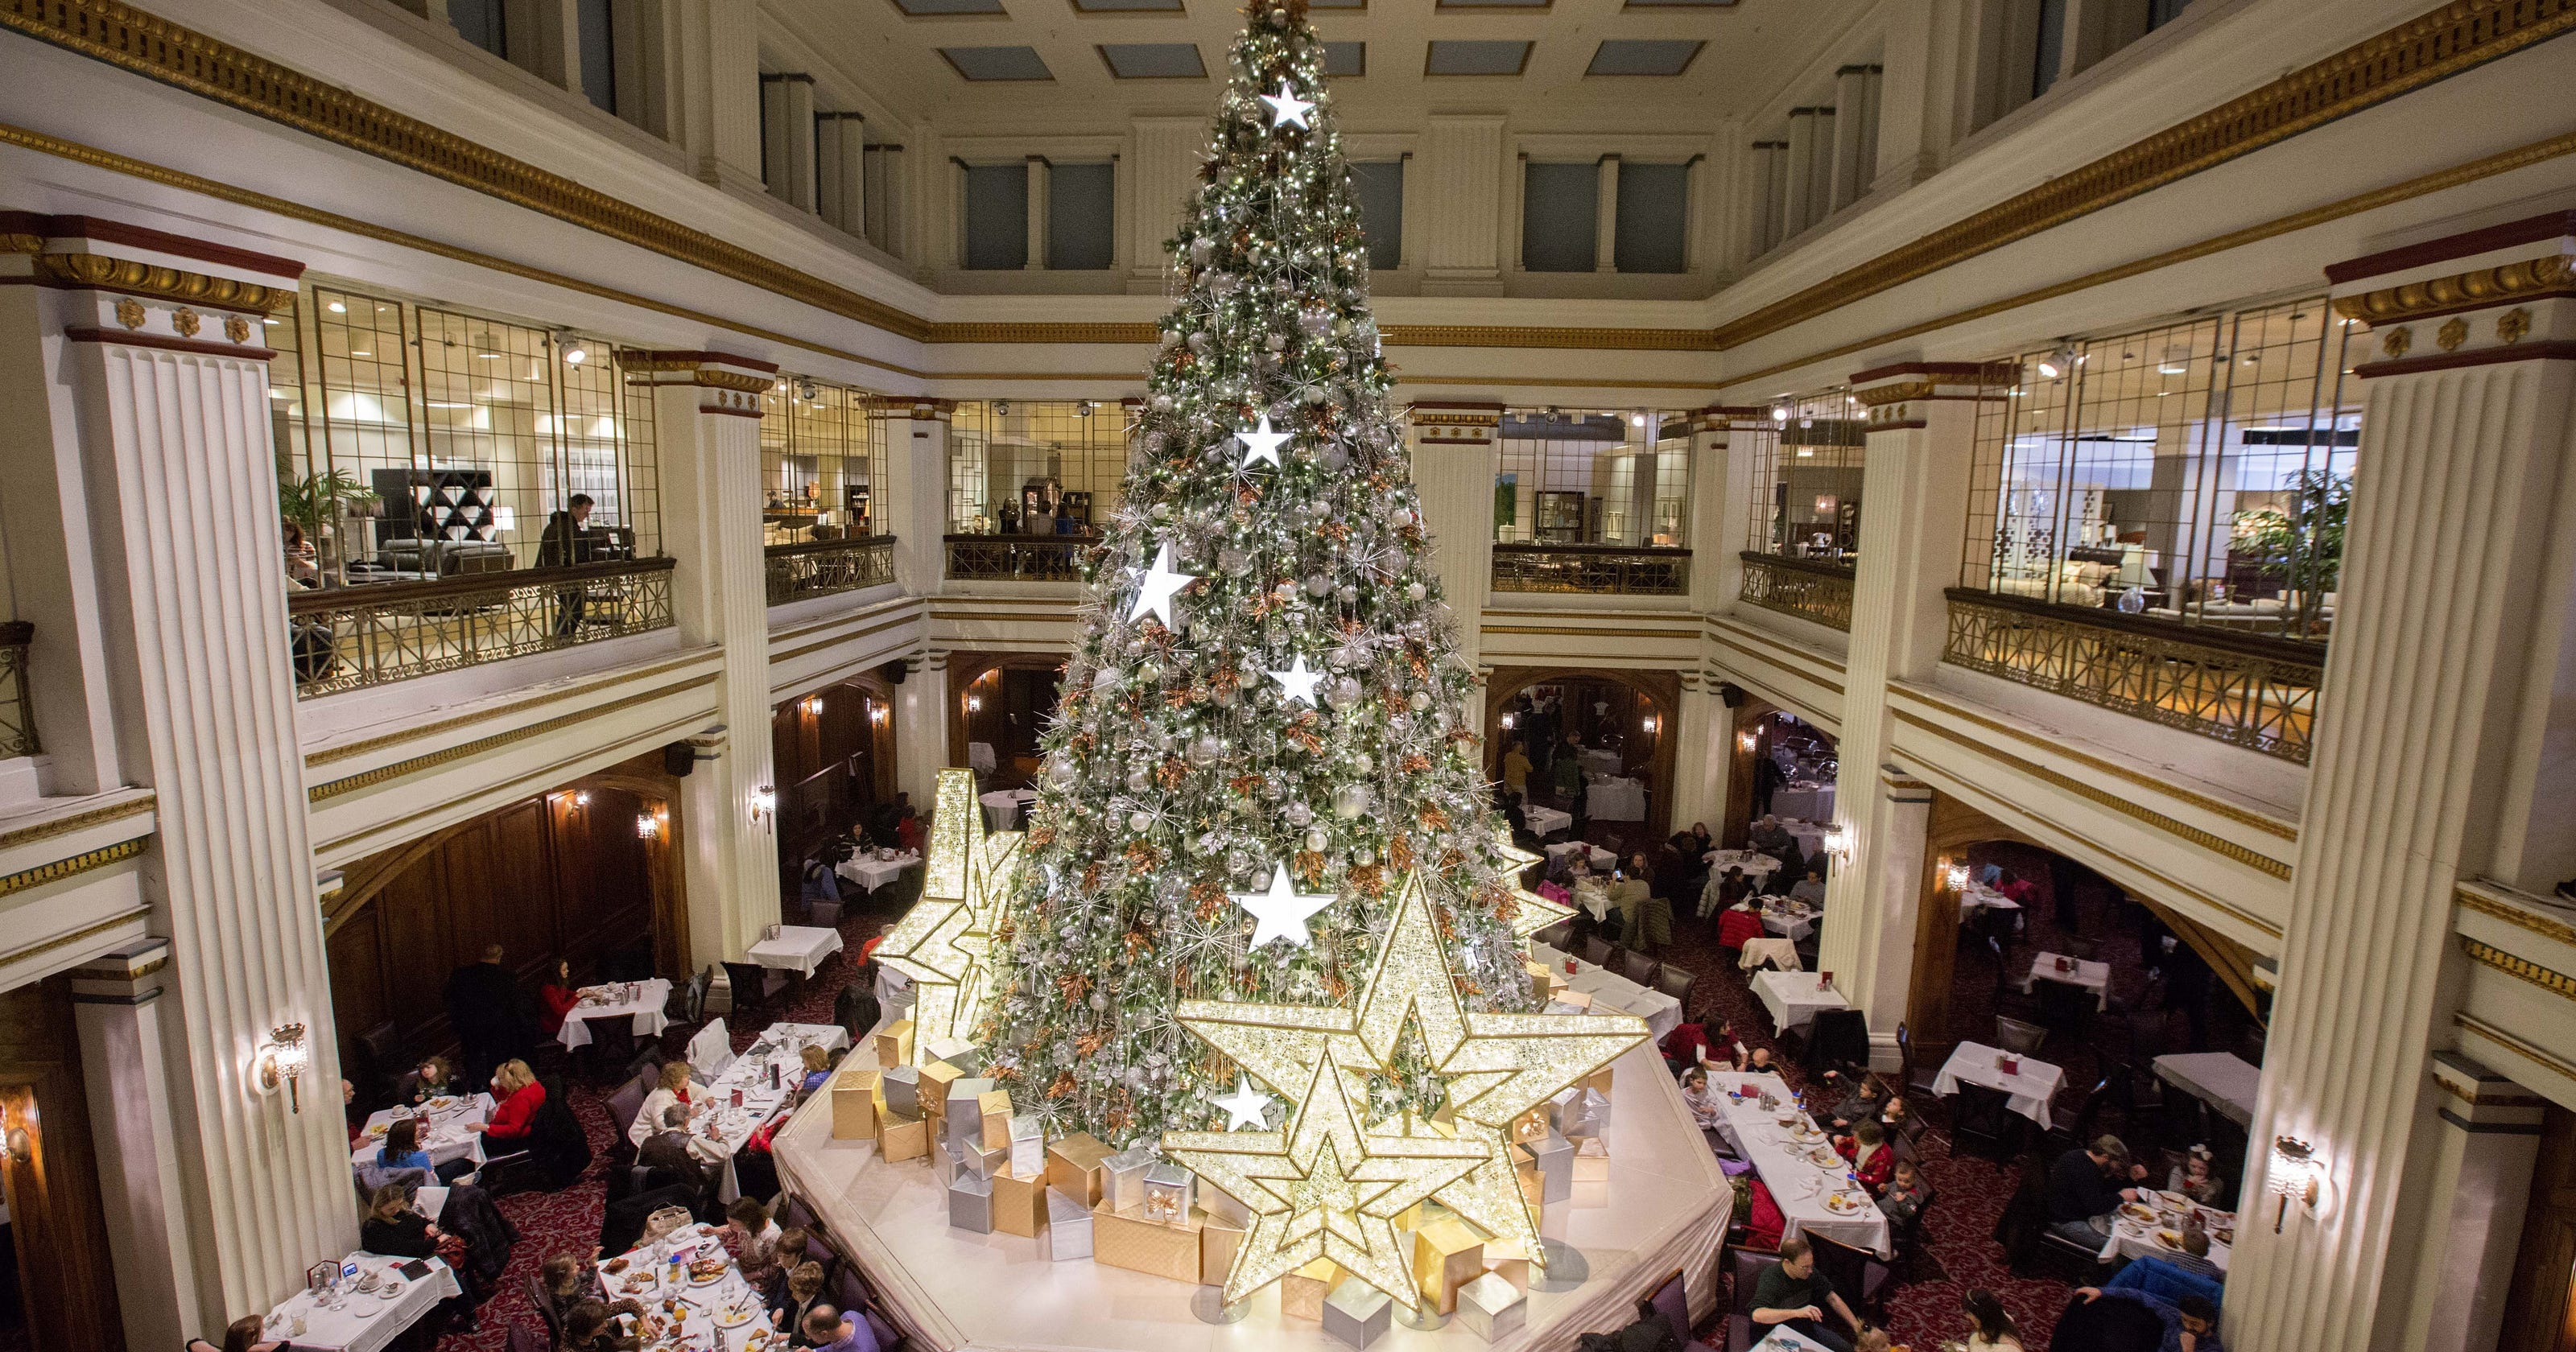 Christmas Things To Do In Chicago.5 Holiday Things To Do In Chicago